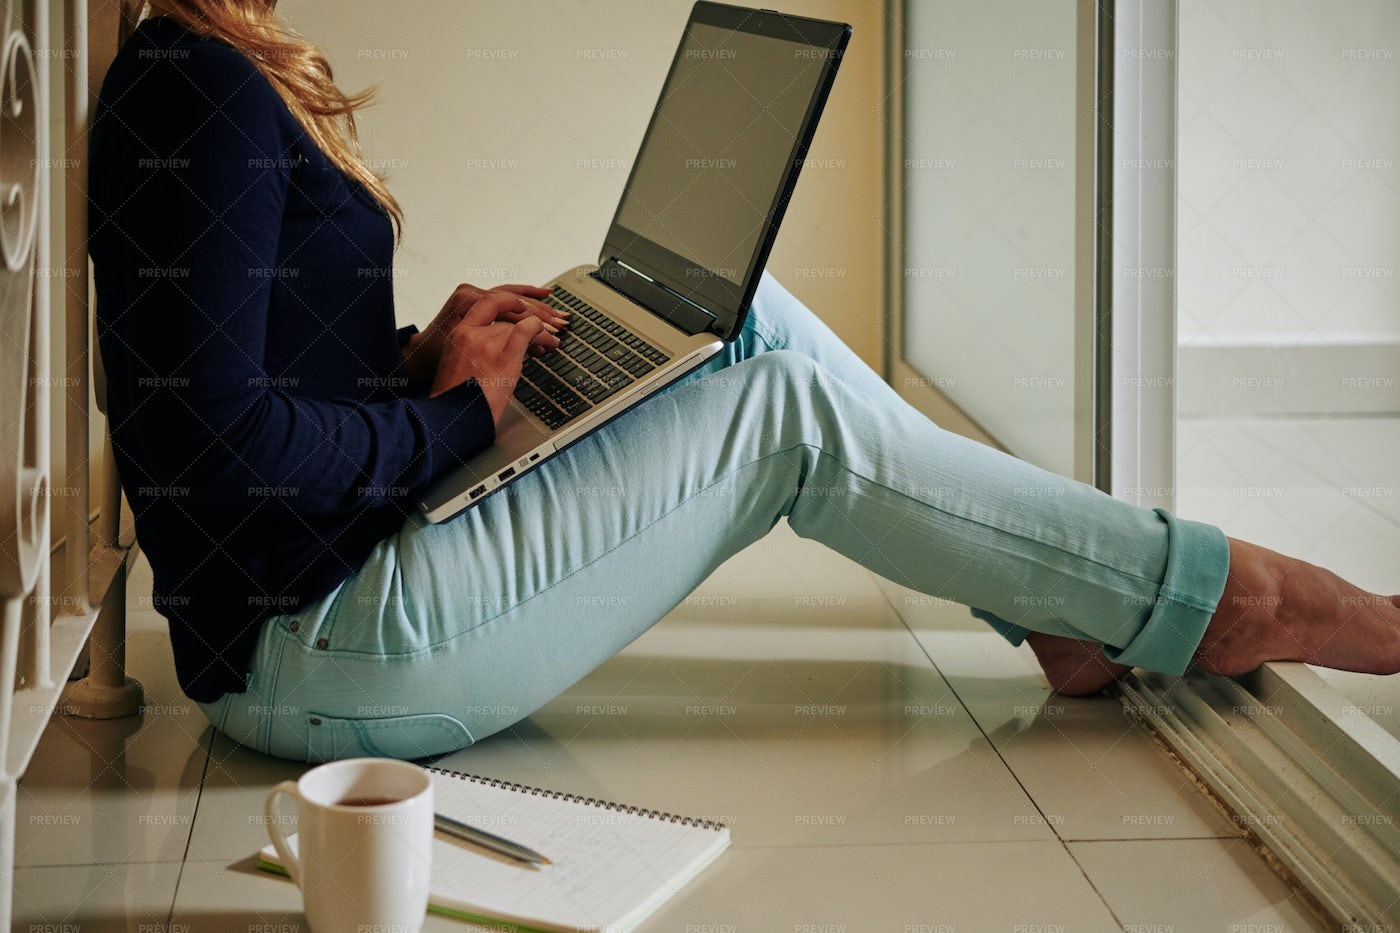 Woman Sitting On Floor With Laptop: Stock Photos